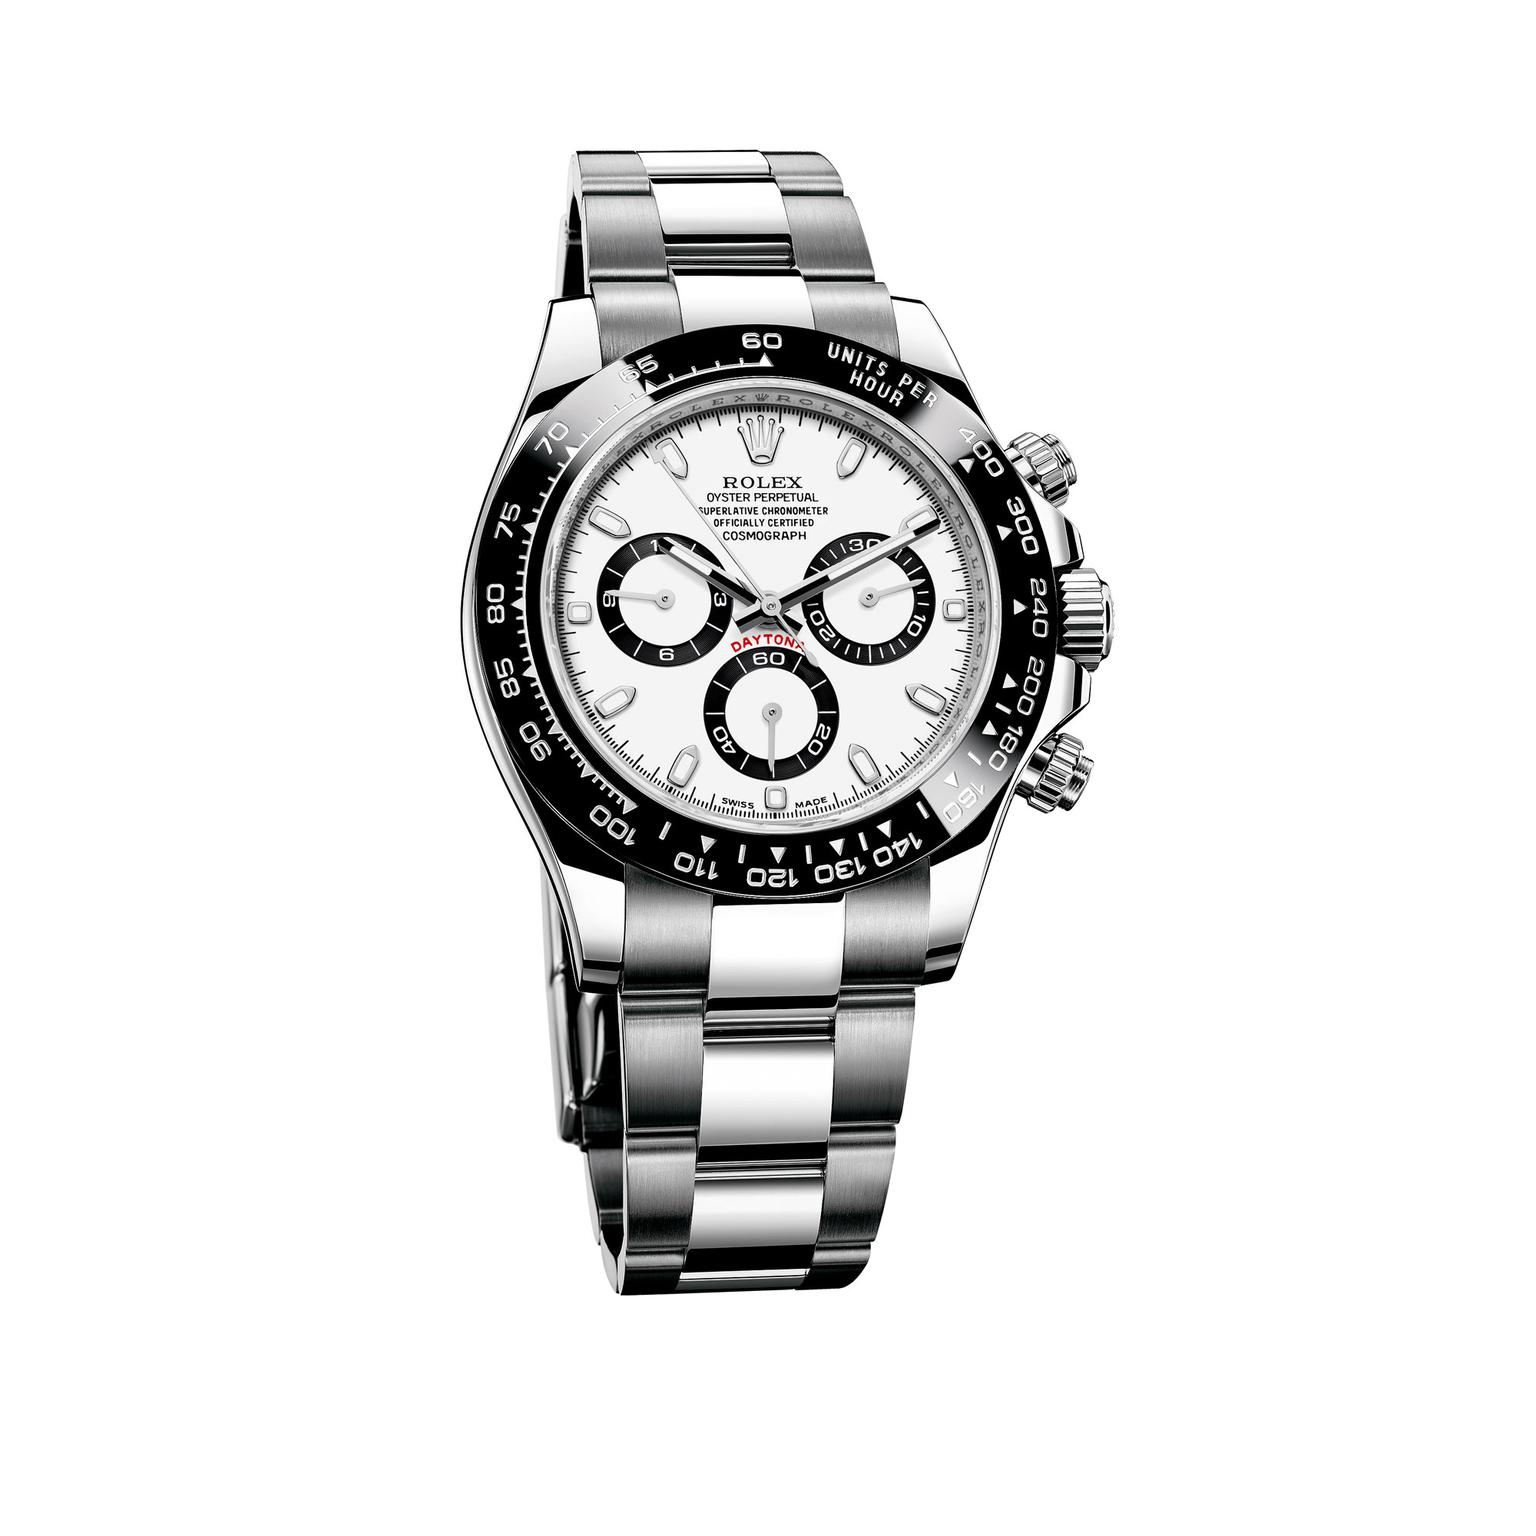 Rolex Cosmograph Daytona watch in stainless steel with a ceramic bezel